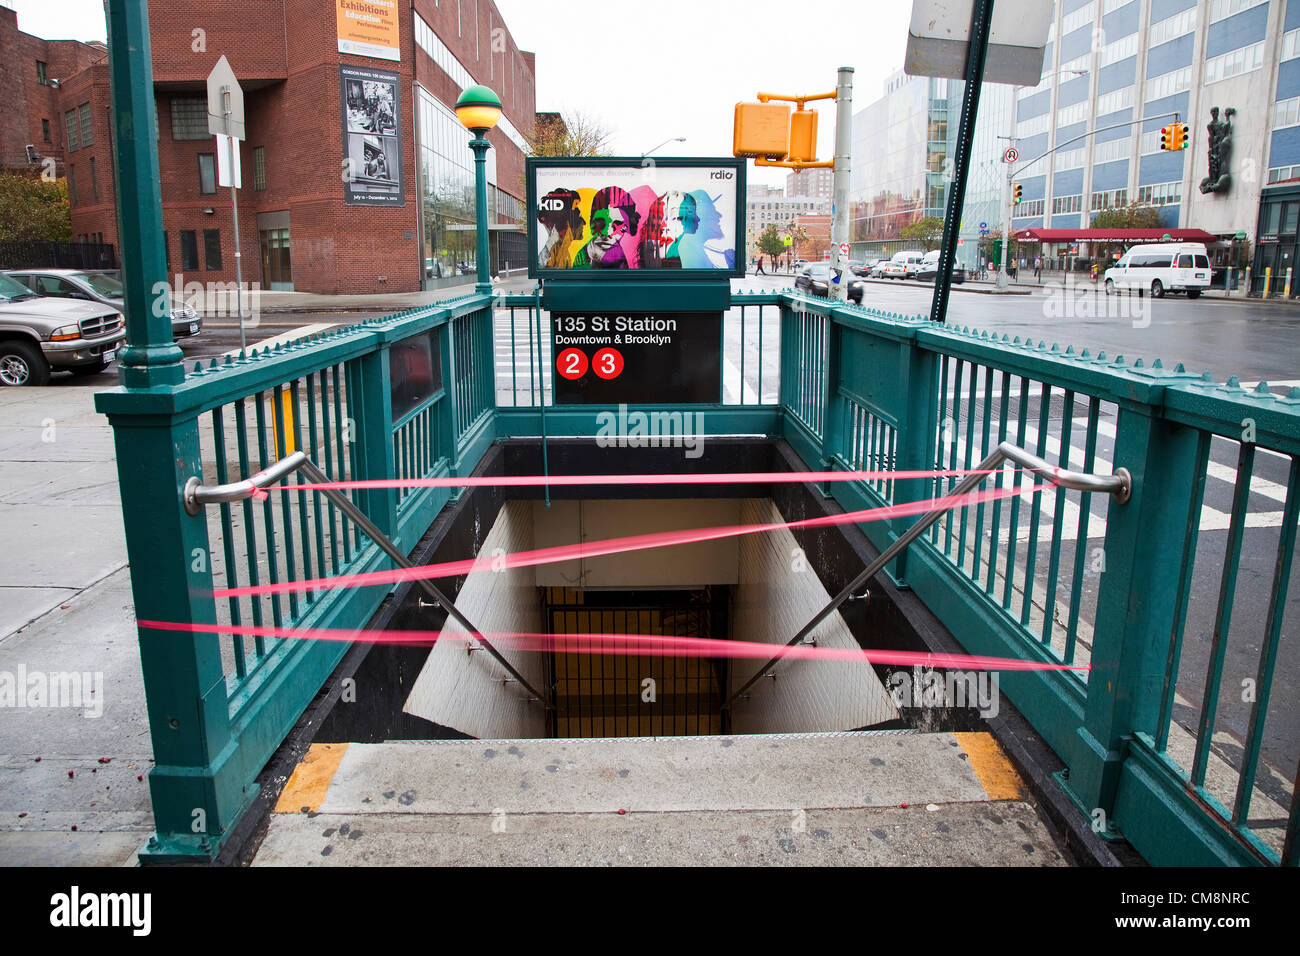 New York City, New York, USA. 29th October, 2012. The subway system has been shut down as hurricane Sandy hits New Stock Photo